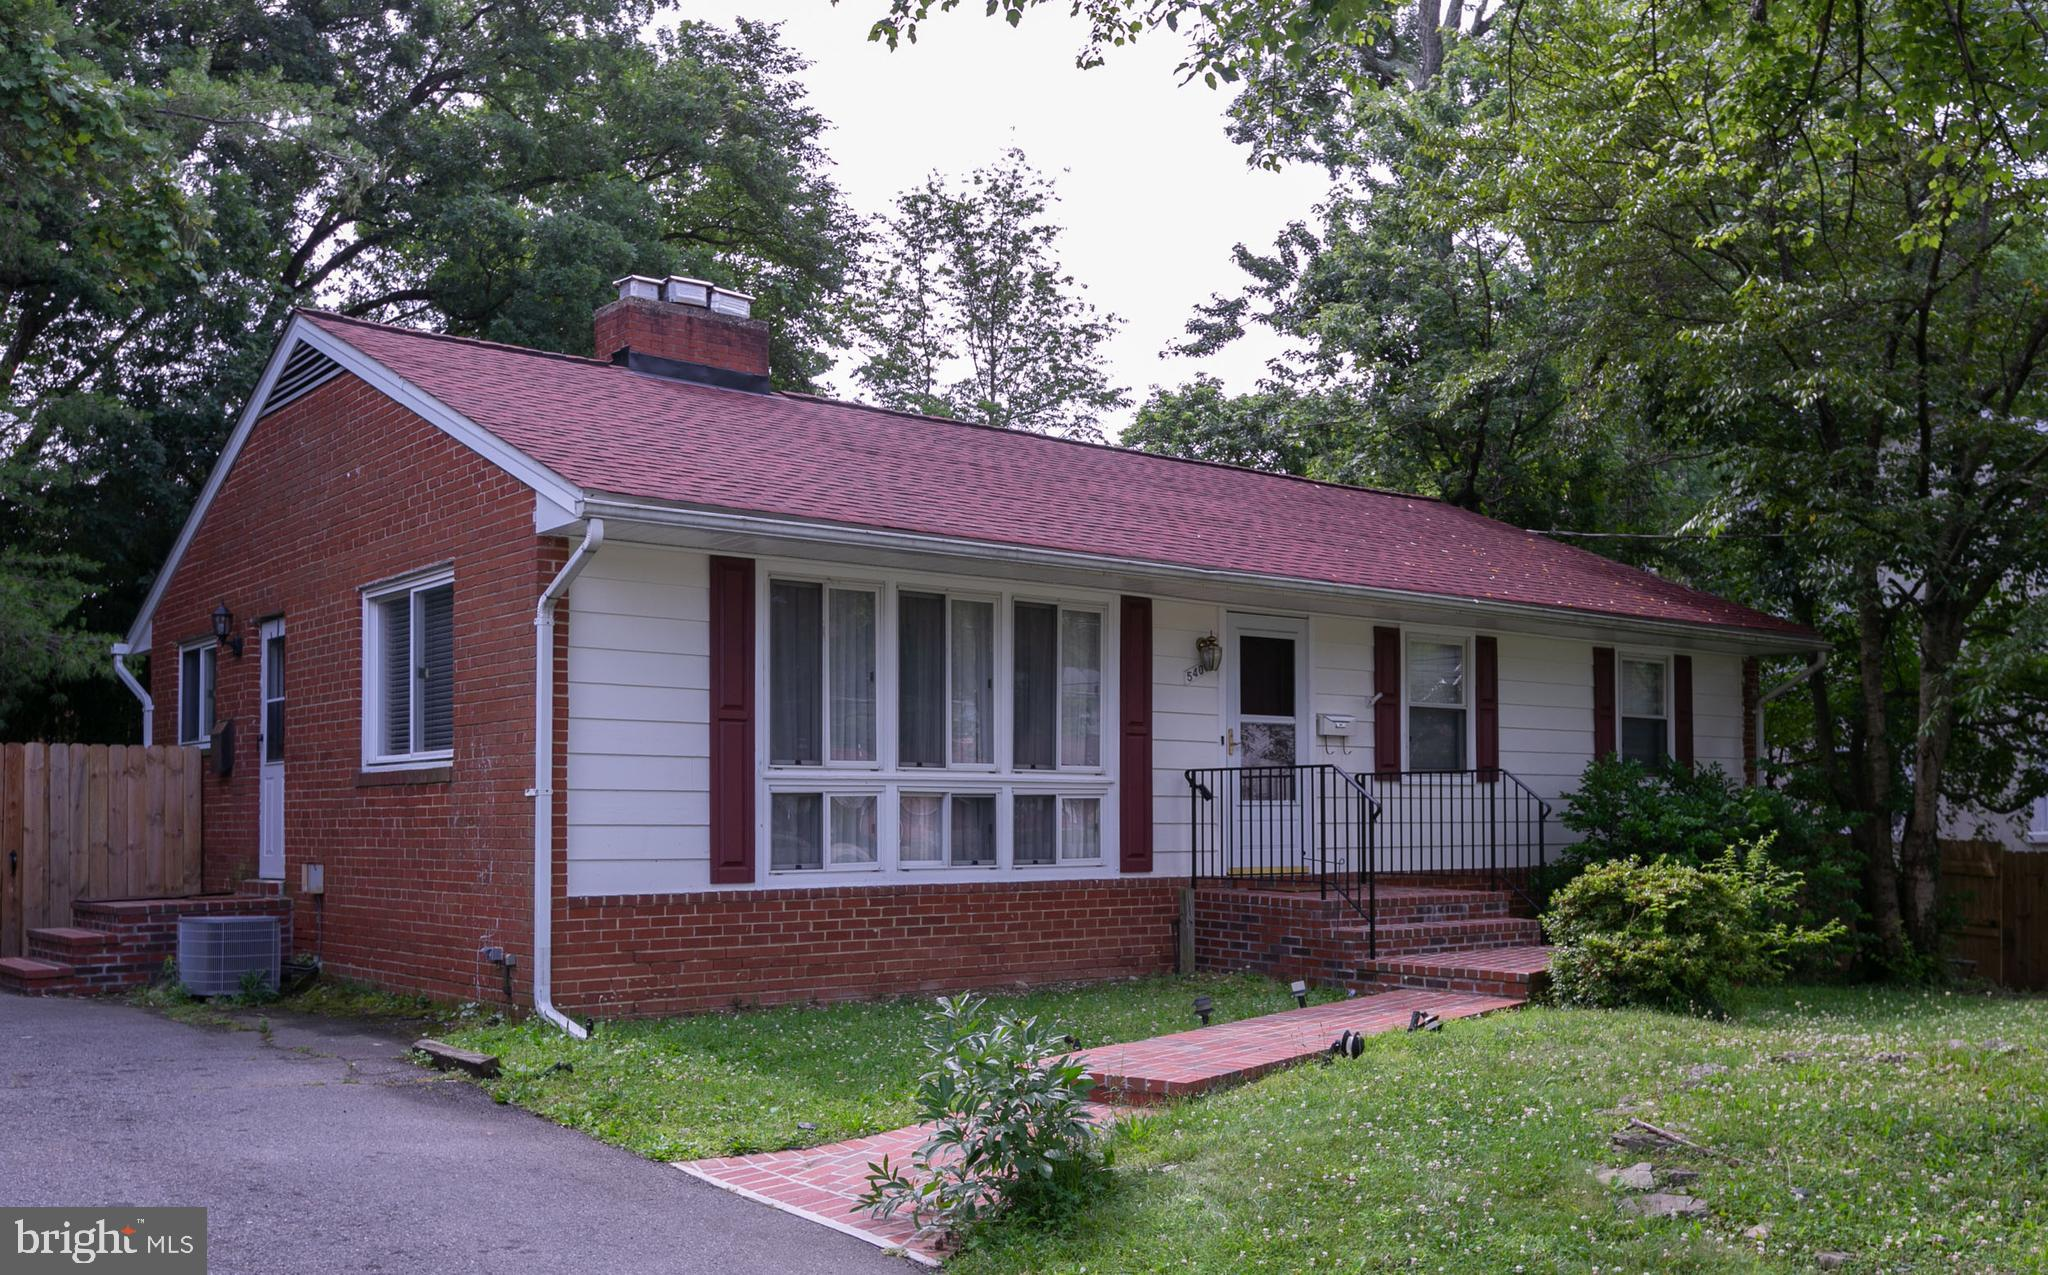 LOCATION LOCATION LOCATION!!! Welcome home! Large 5 br 2.5 ba rambler inside the beltway. Living room full of natural light with beautiful fireplace. New refrigerator and built in microwave. New roof (2018), new fence (2018), new brick front stairs and walk up (2018). Fresh paint throughout. New carpet in bedrooms. Hardwood floors. Great backyard for entertaining.  Great opportunity!